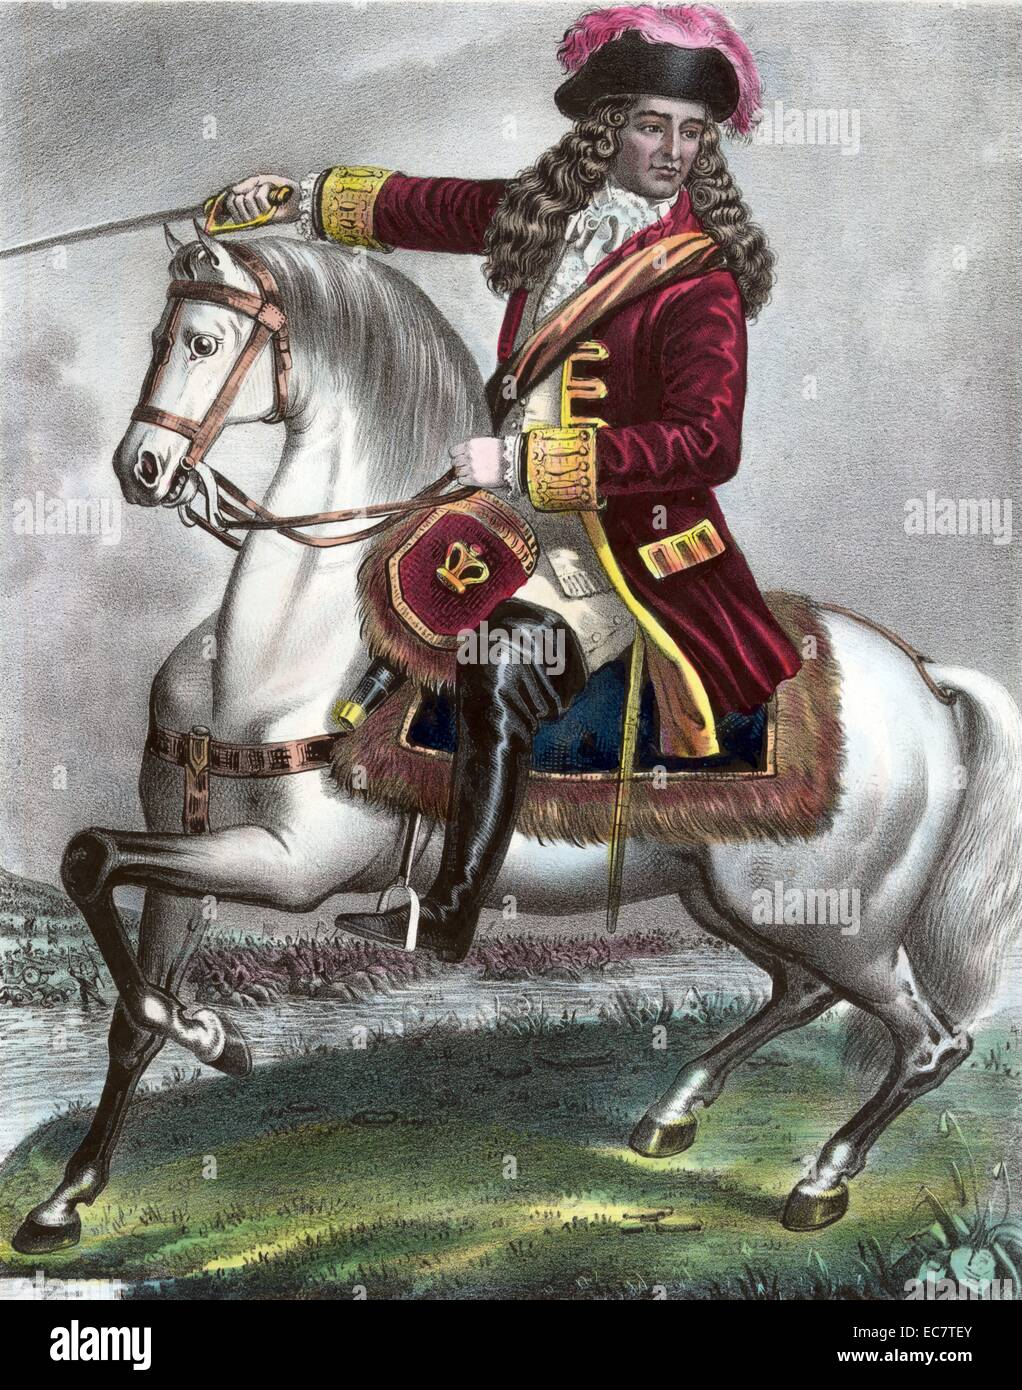 William of Orange, shown riding a horse. William III fought the Catholics at The Battle of Boyne. Dated around 1690 - Stock Image